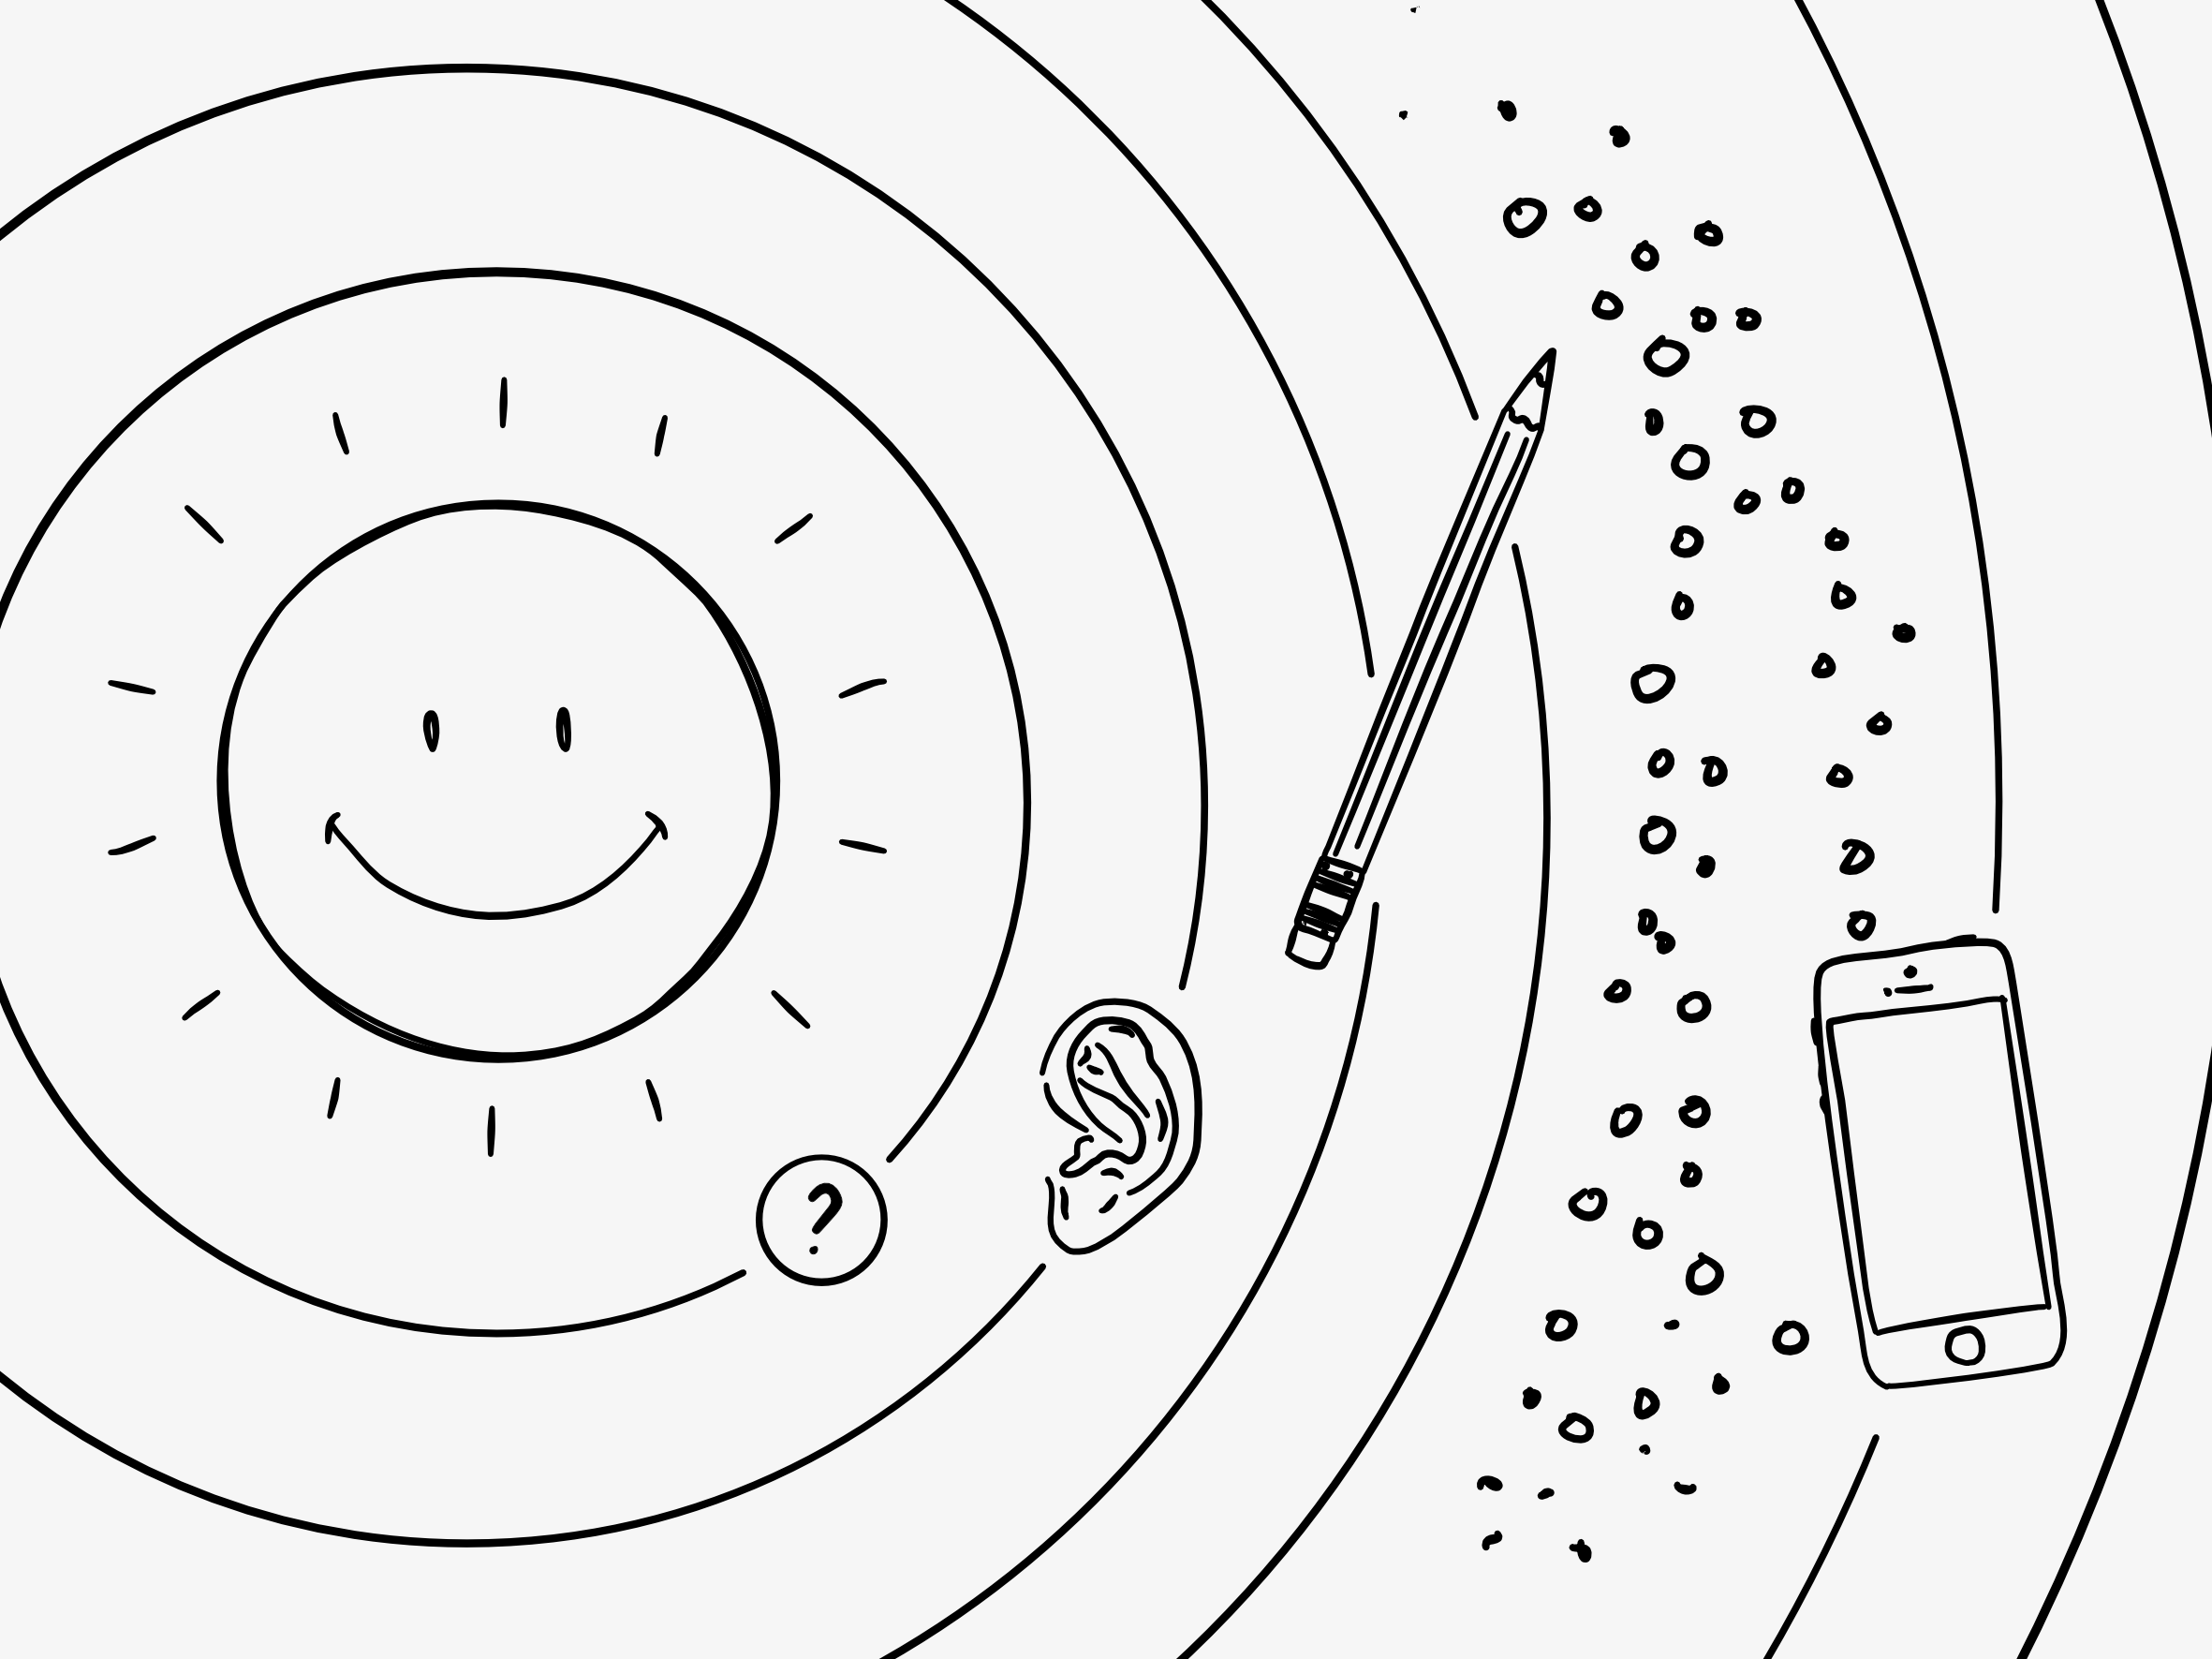 What I've Learned About Human Centred Design in the last few months